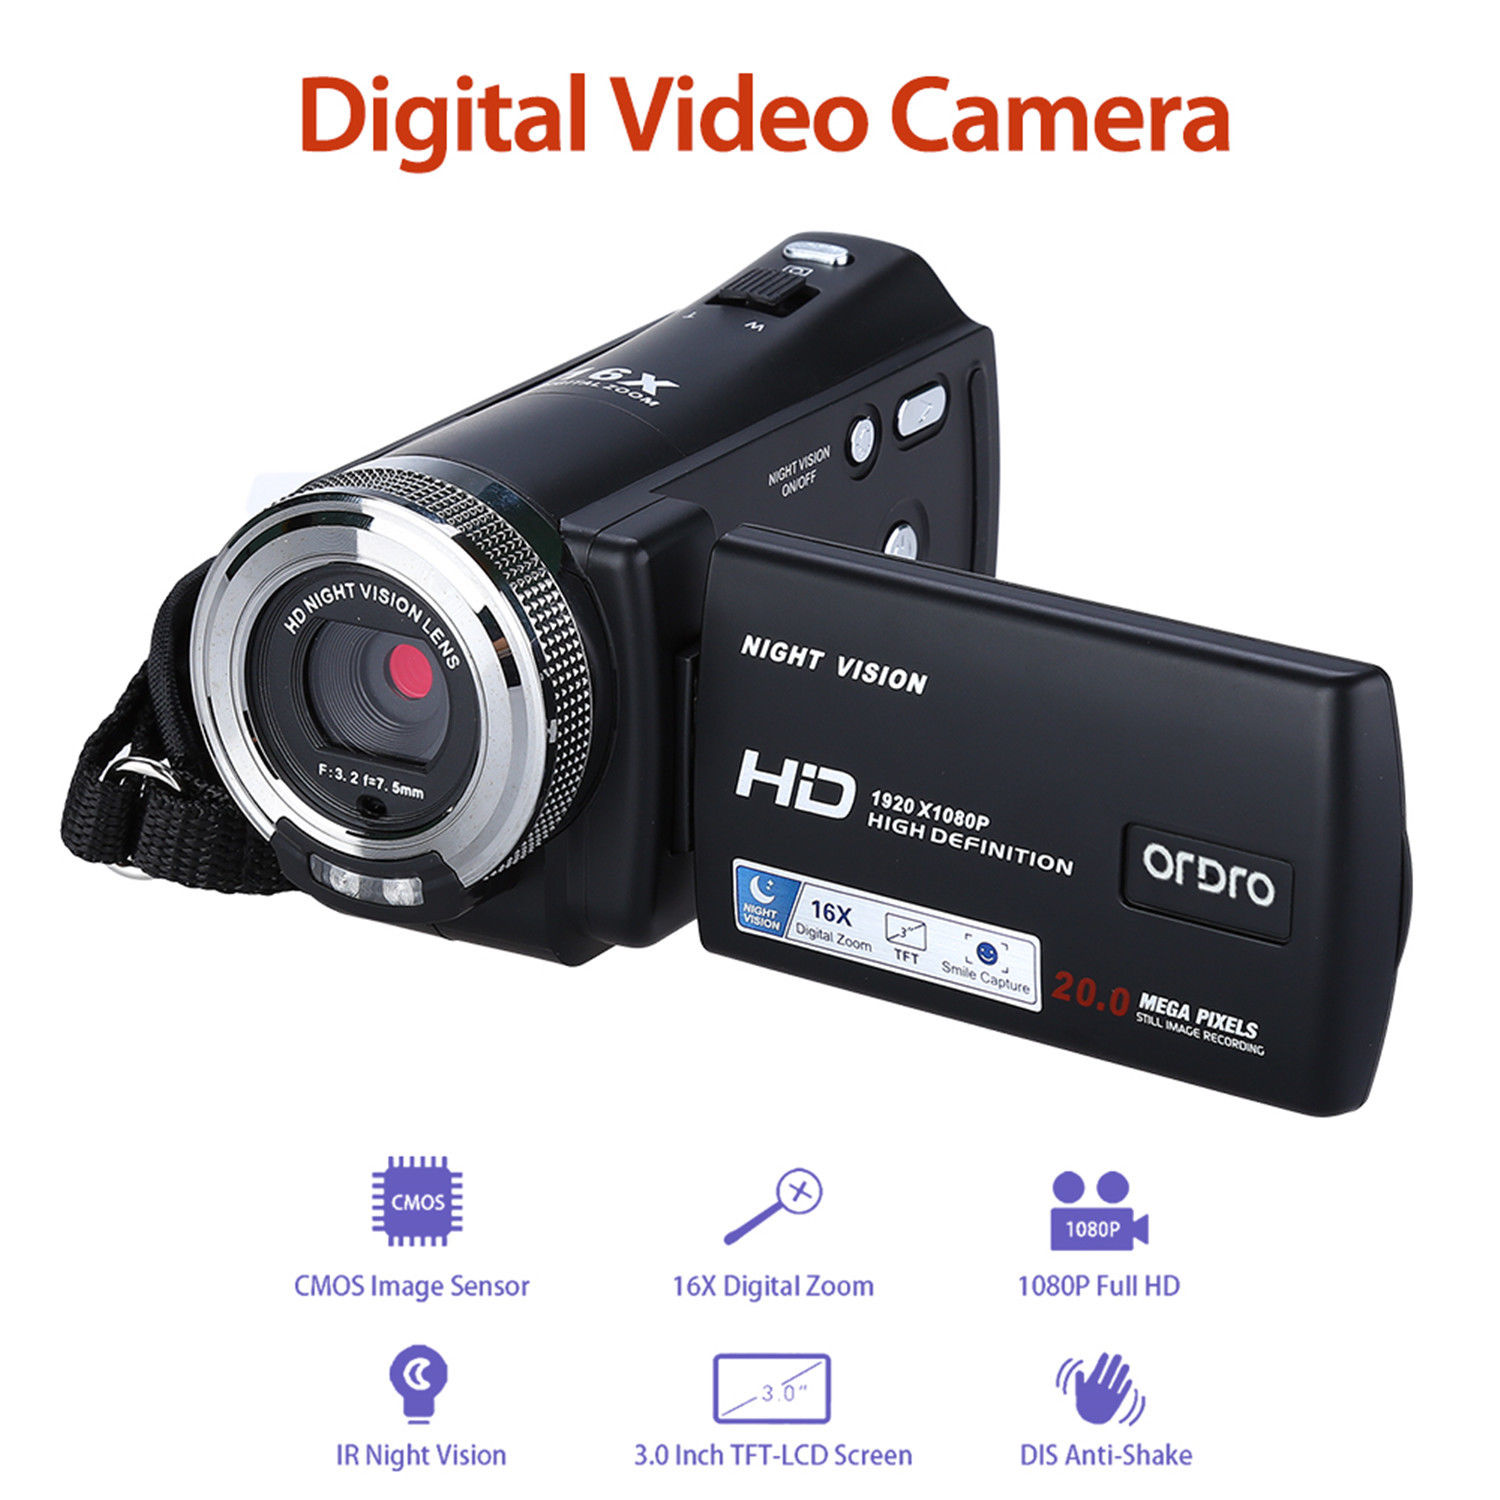 ORDRO HDV-V12 3.0 LCD 16X Digital Zoom 1080P FHD Digital Camera Cam Infrared DVR DV Video Recorder Night Vision CMOS Sensor